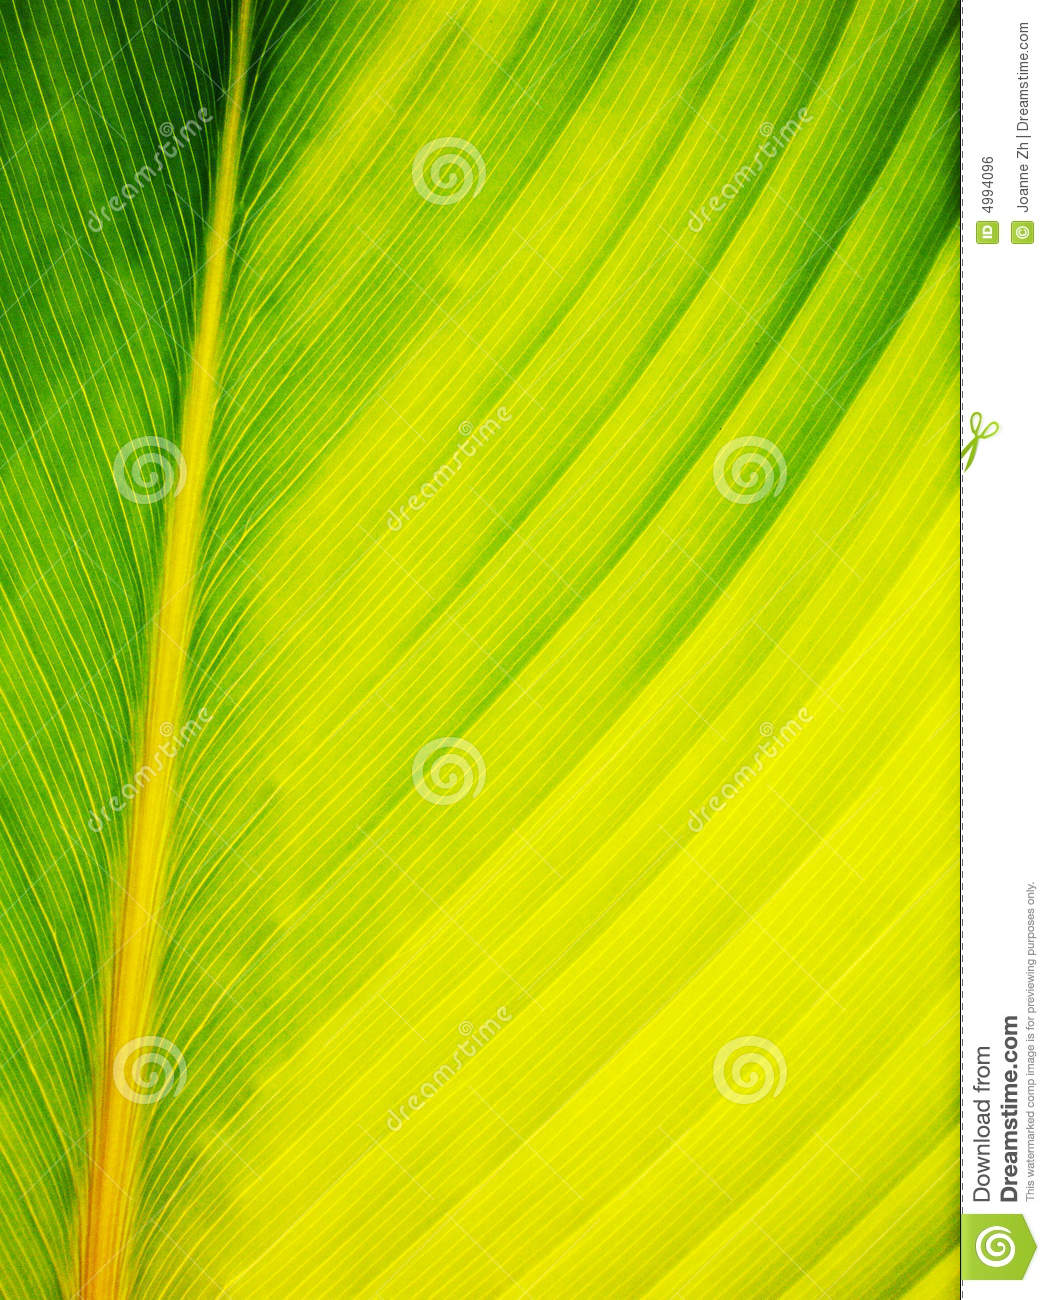 Leaf abstract close up